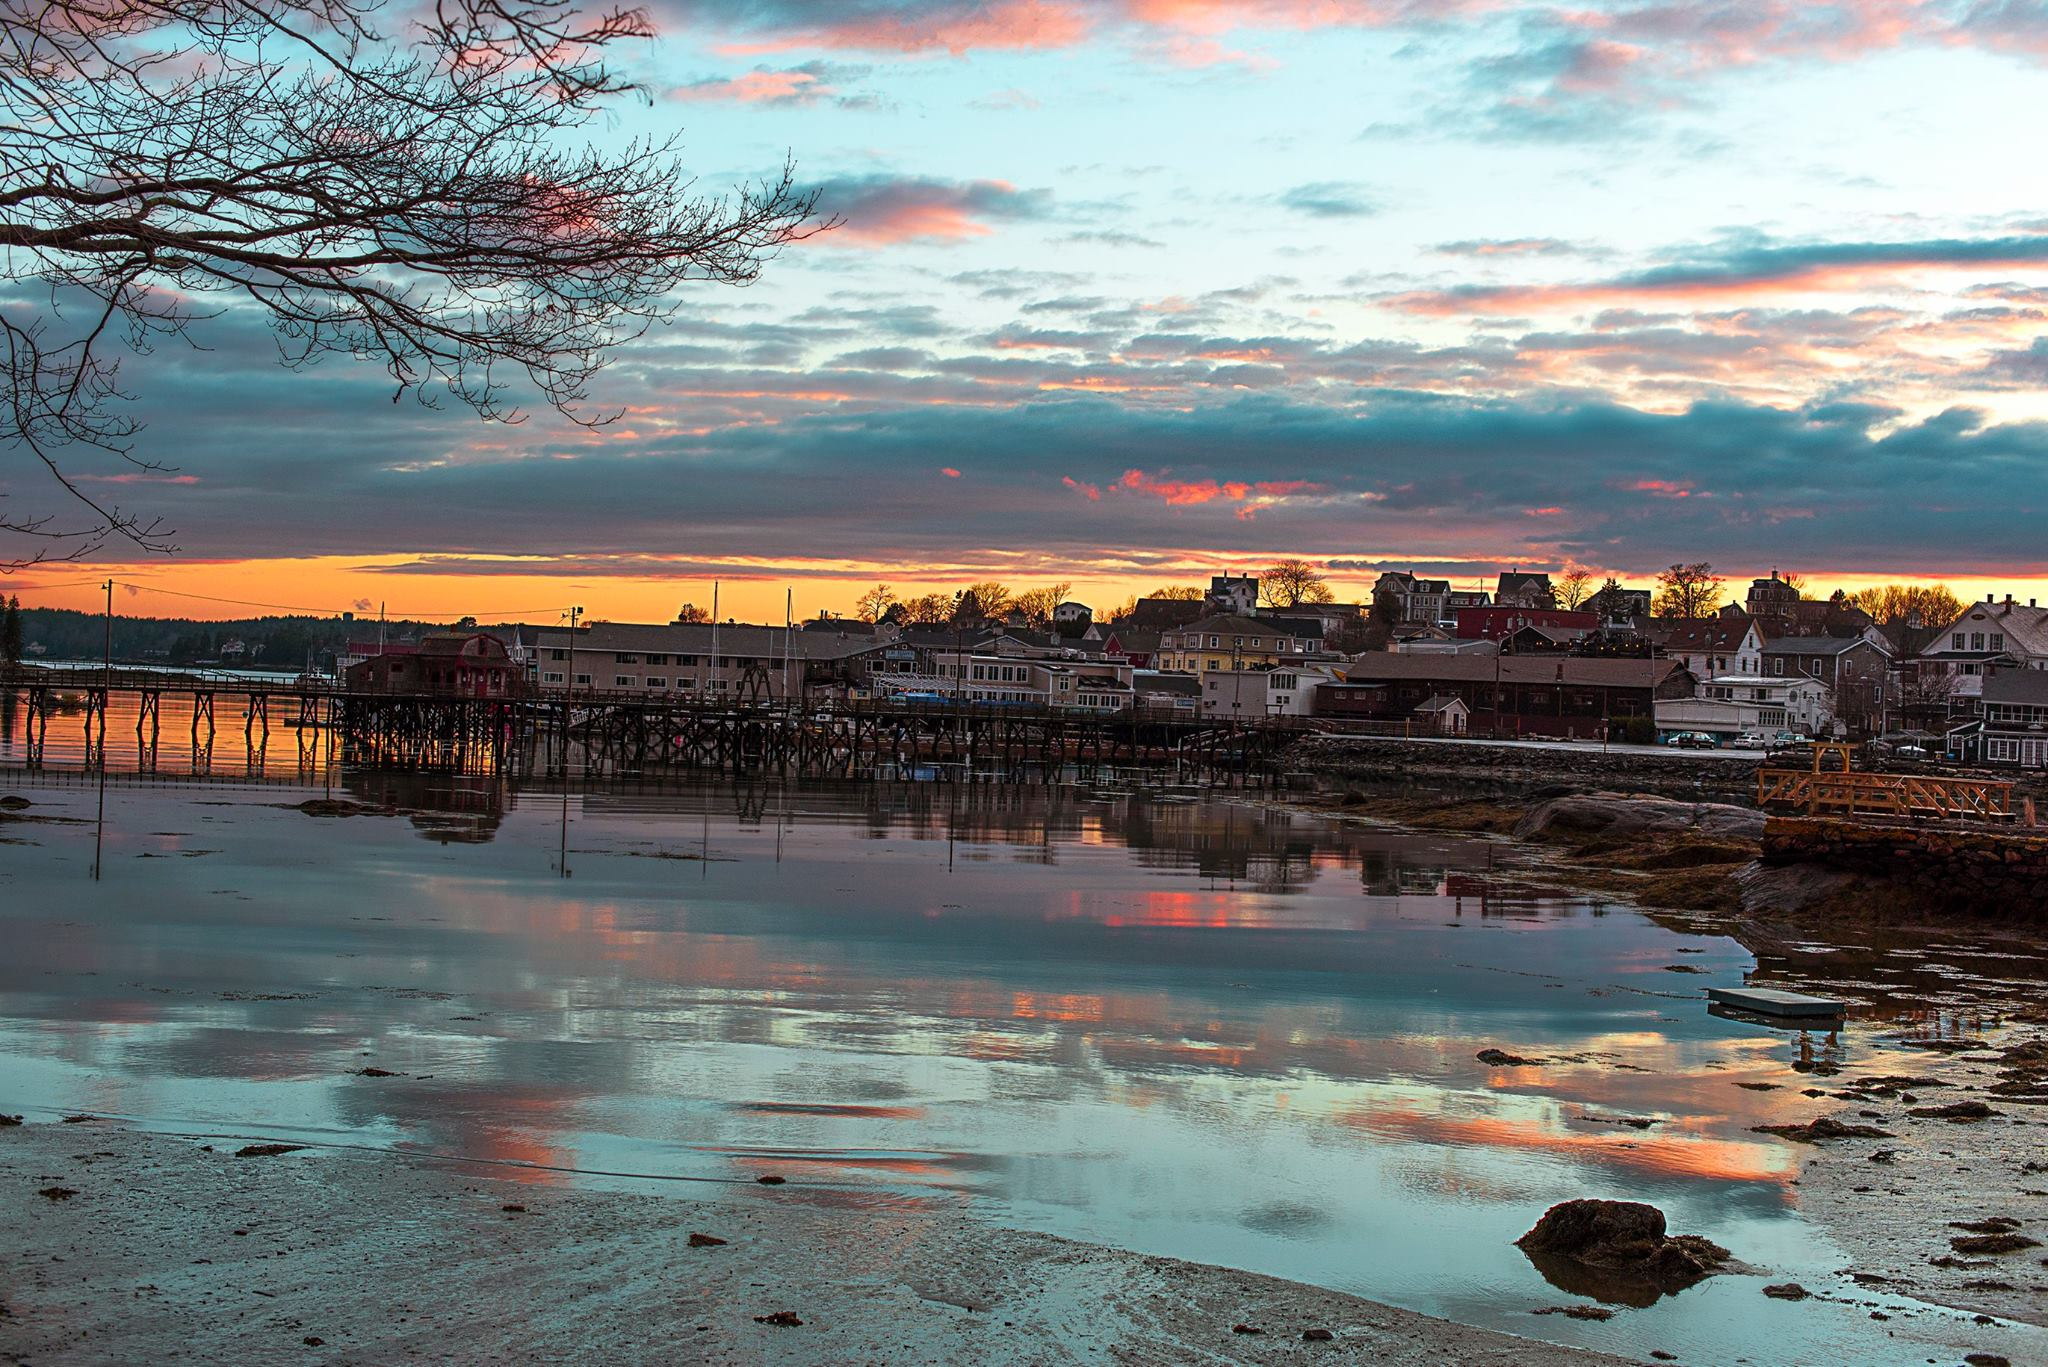 Photo of Boothbay Harbor, Maine by Cody Barry